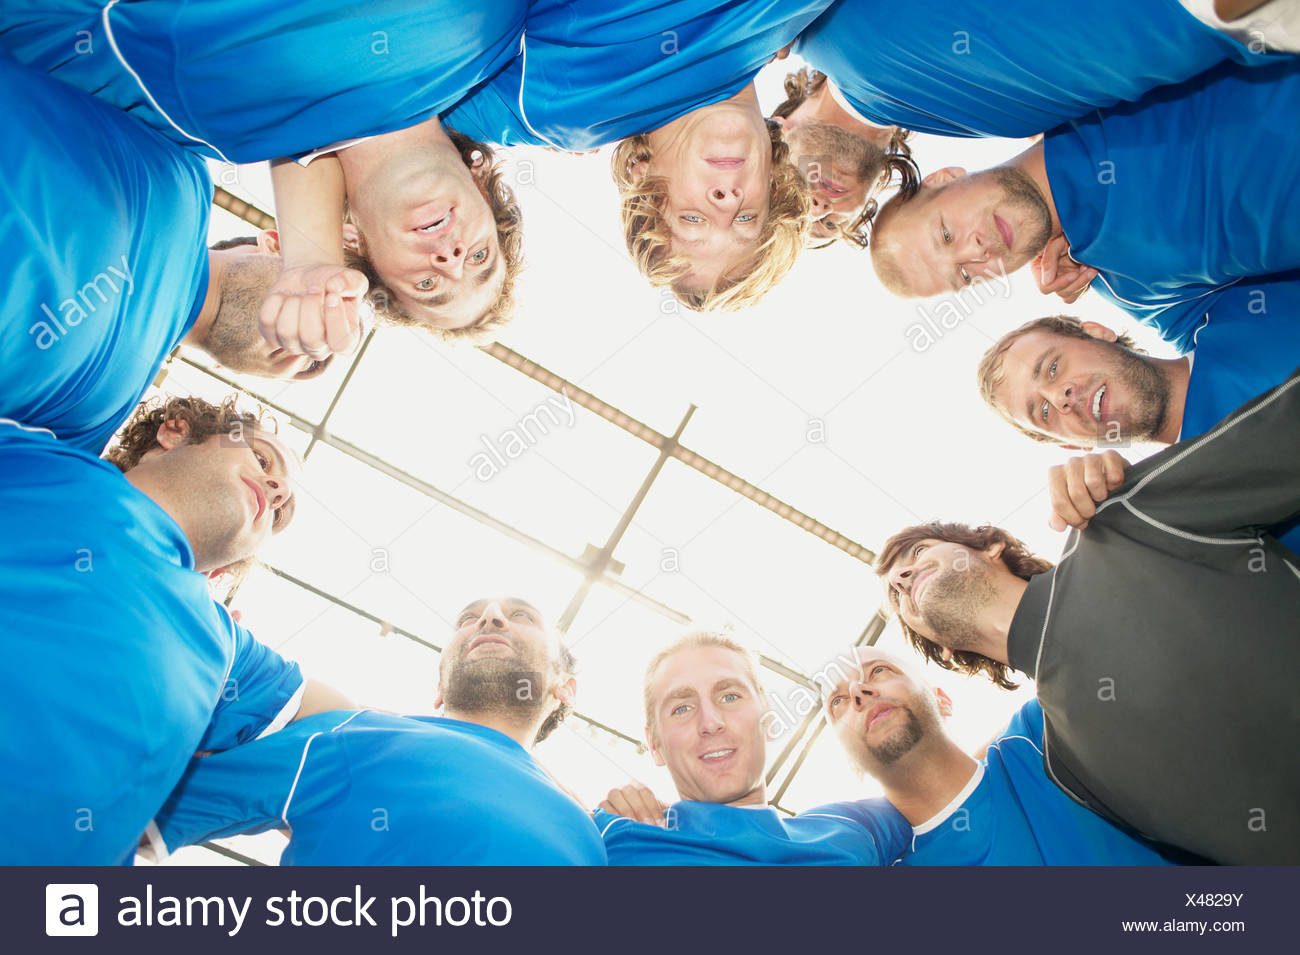 Football team from below - Stock Image